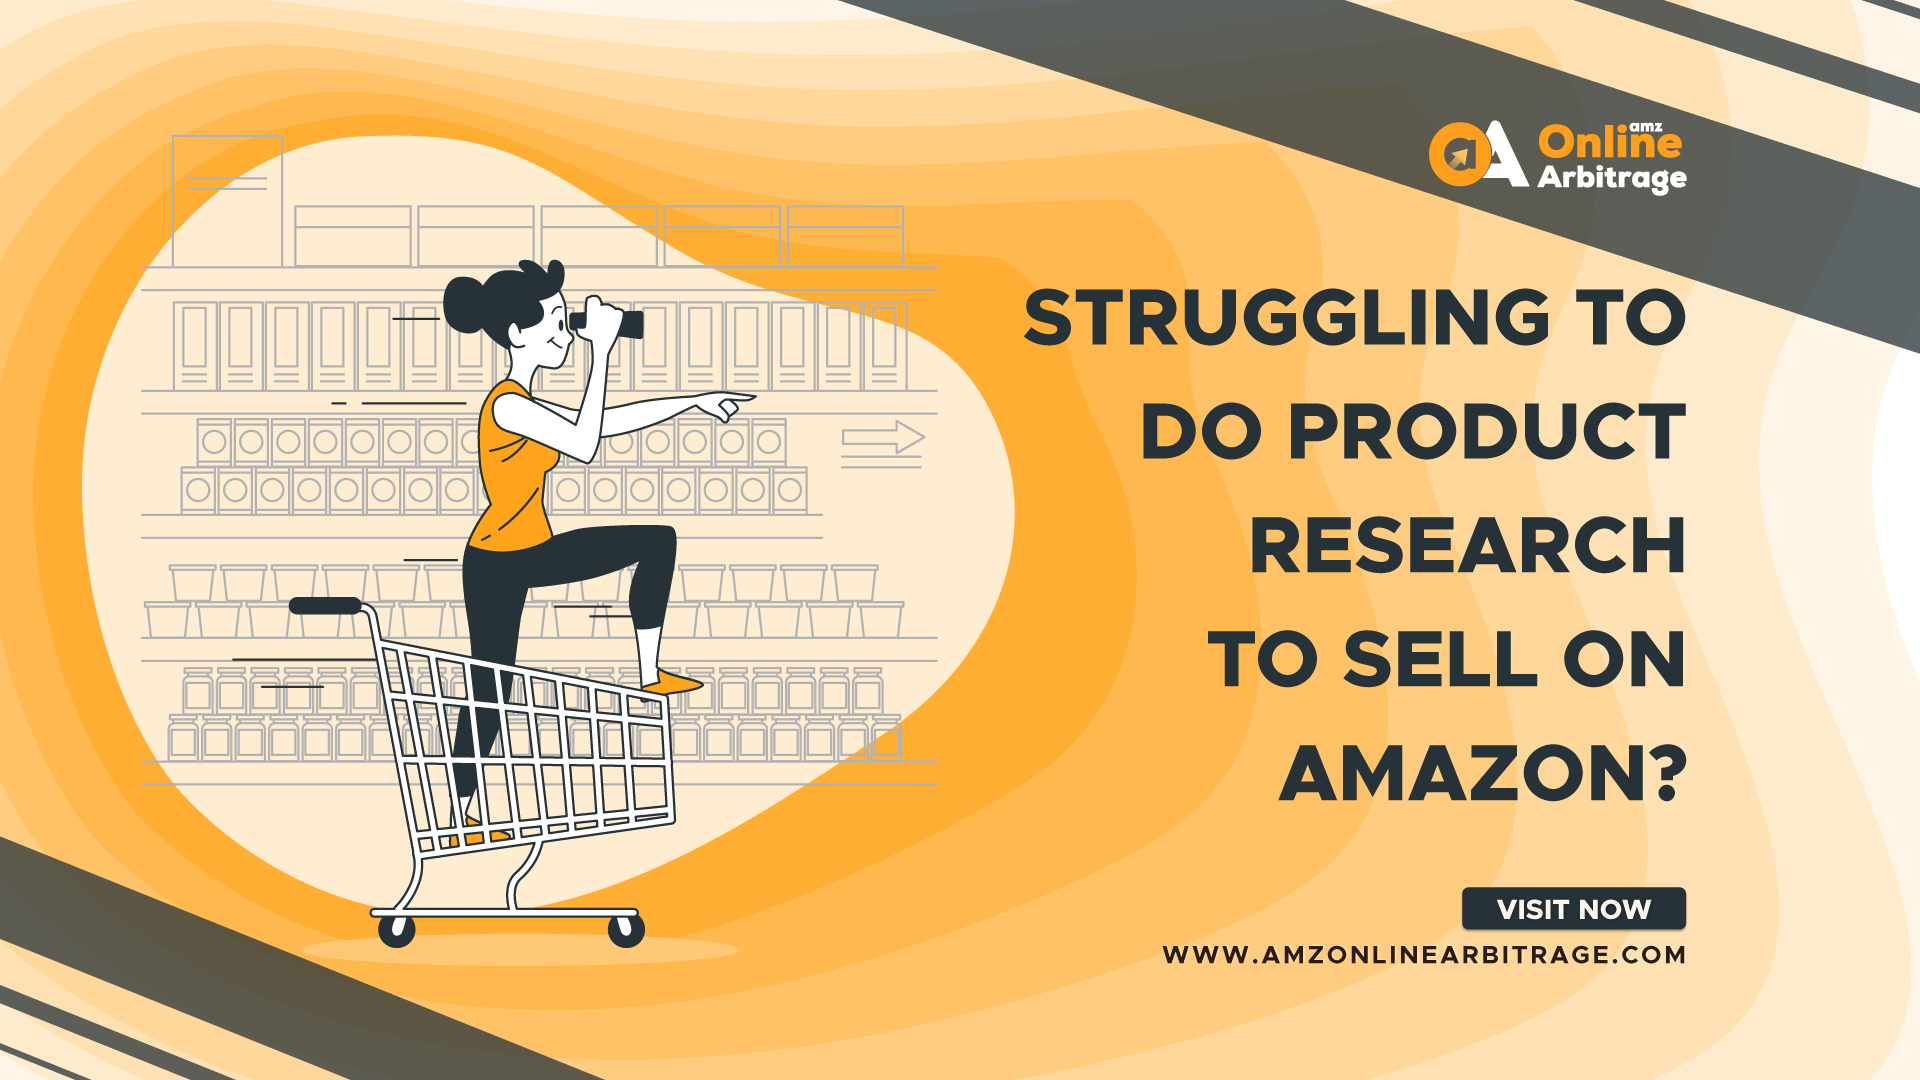 STRUGGLING TO DO PRODUCT RESEARCH TO SELL ON AMAZON?